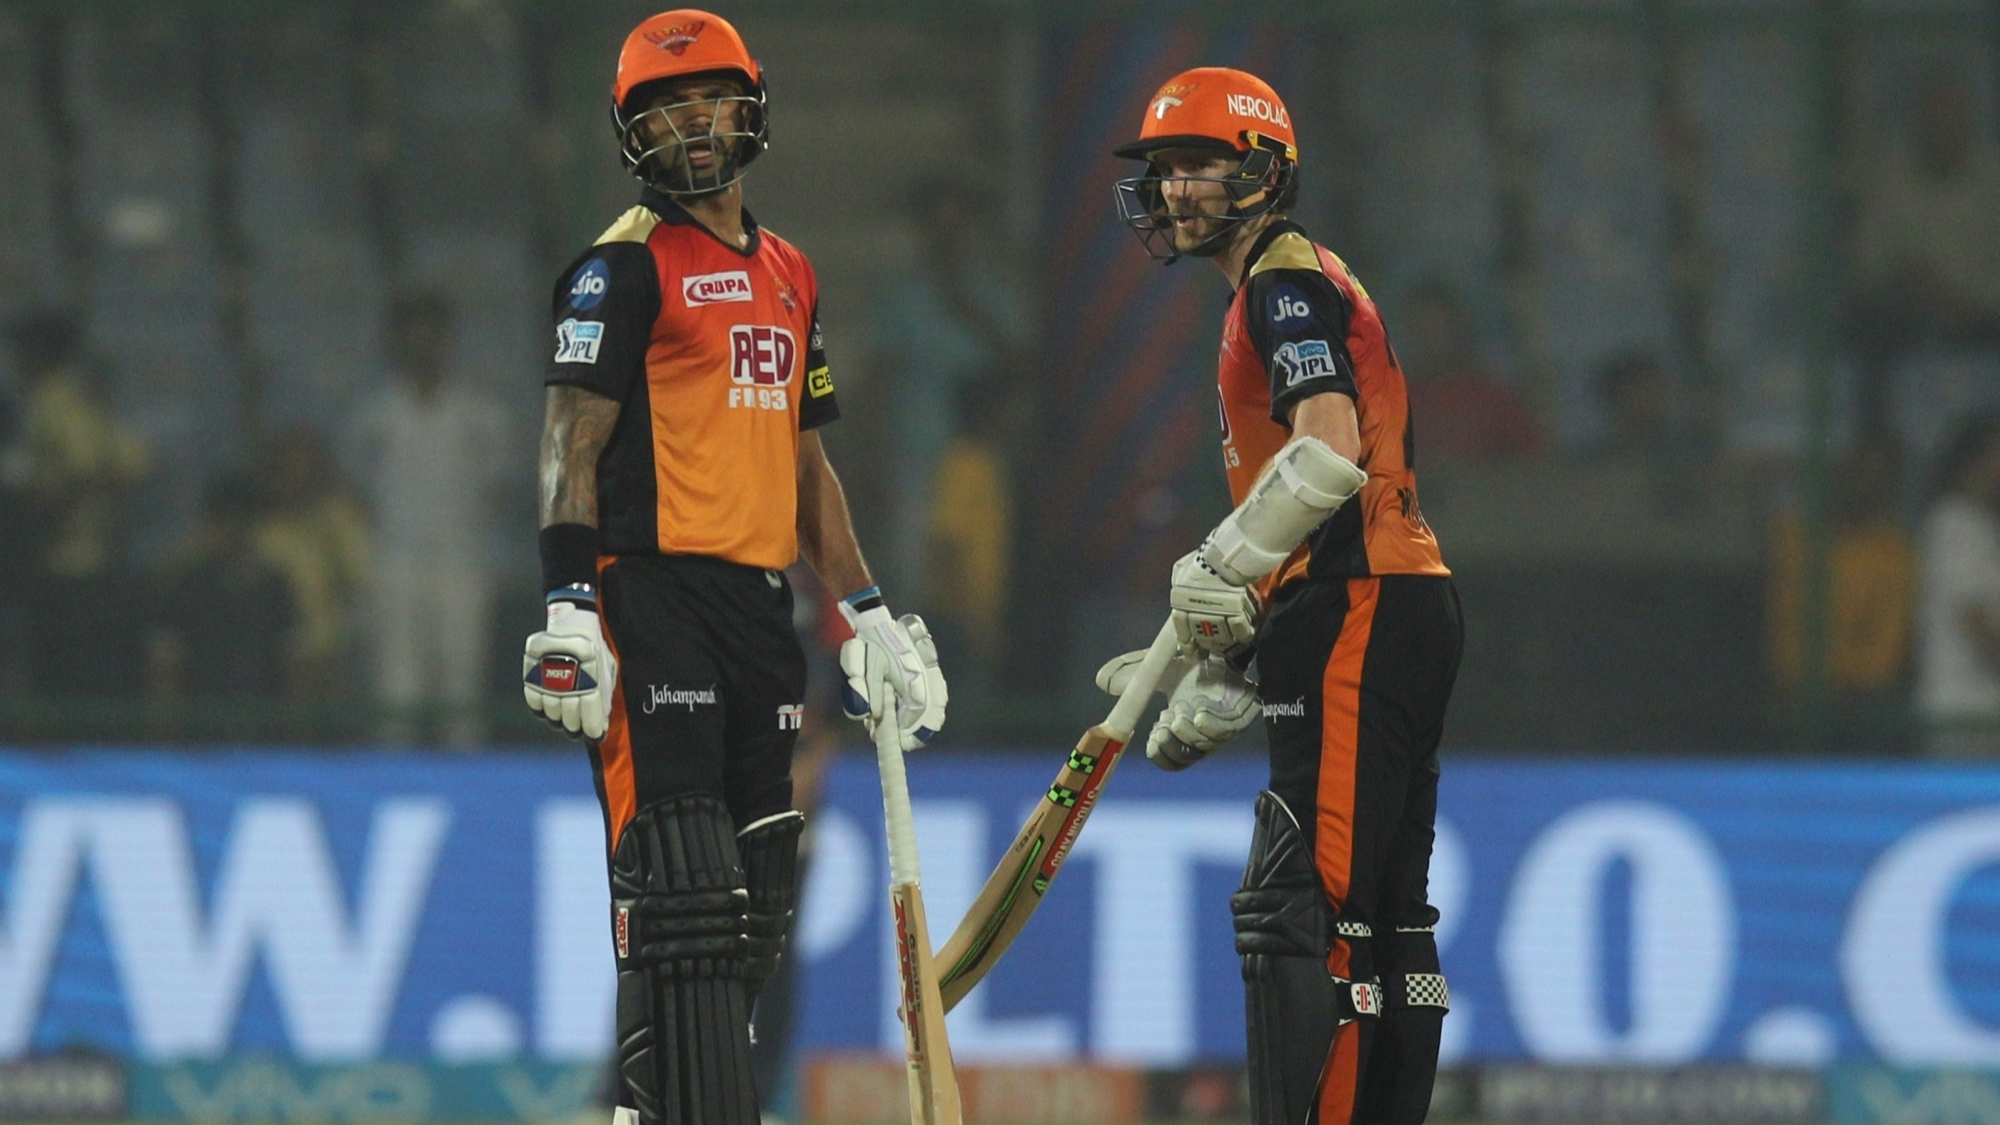 IPL 2018: Twitter reacts as Dhawan-Williamson batting masterclass put SRH in a commanding position against CSK